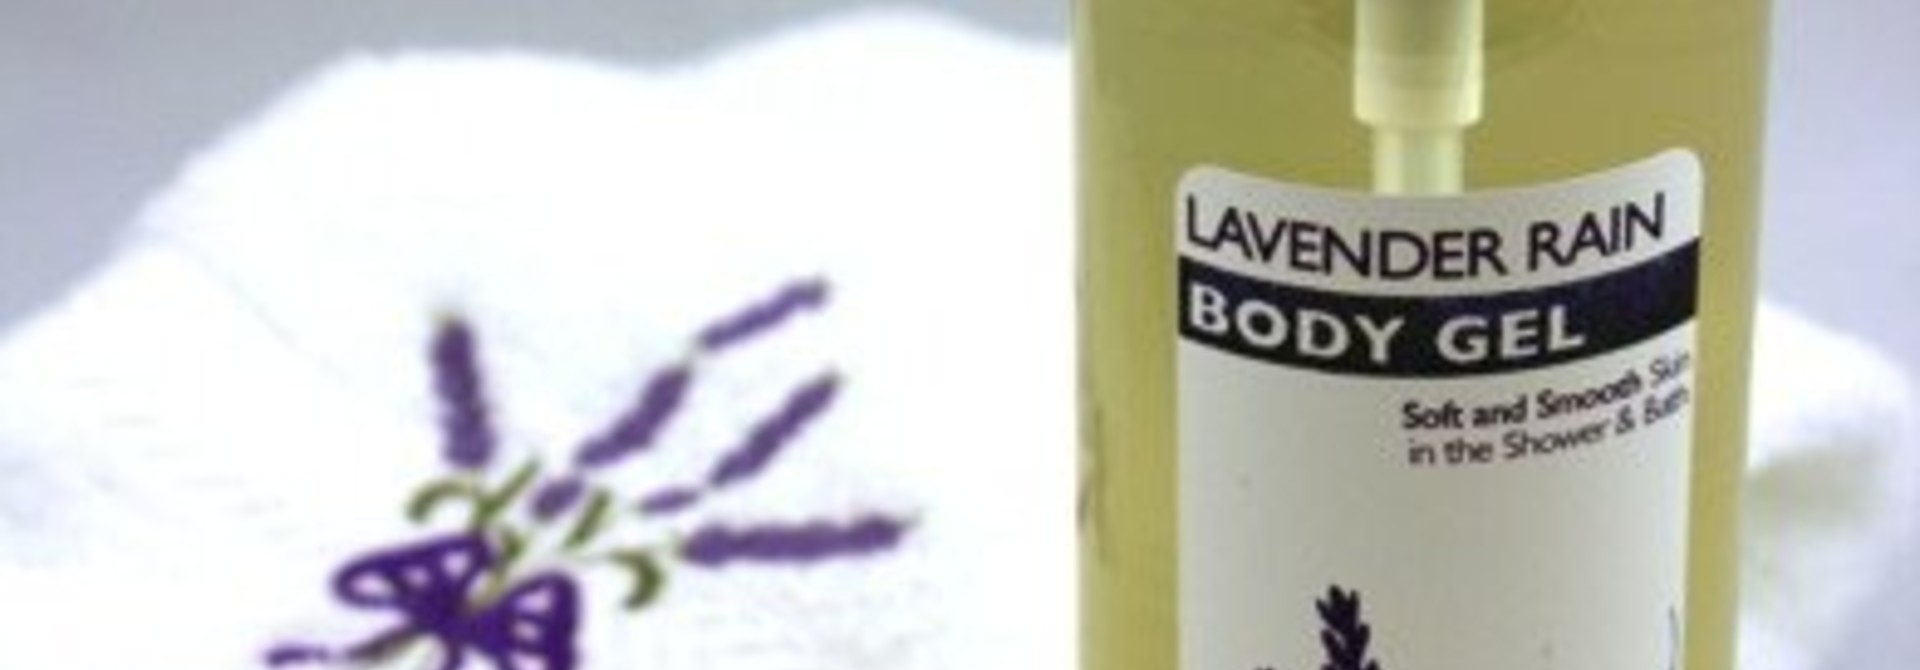 Lavender Rain Body Gel